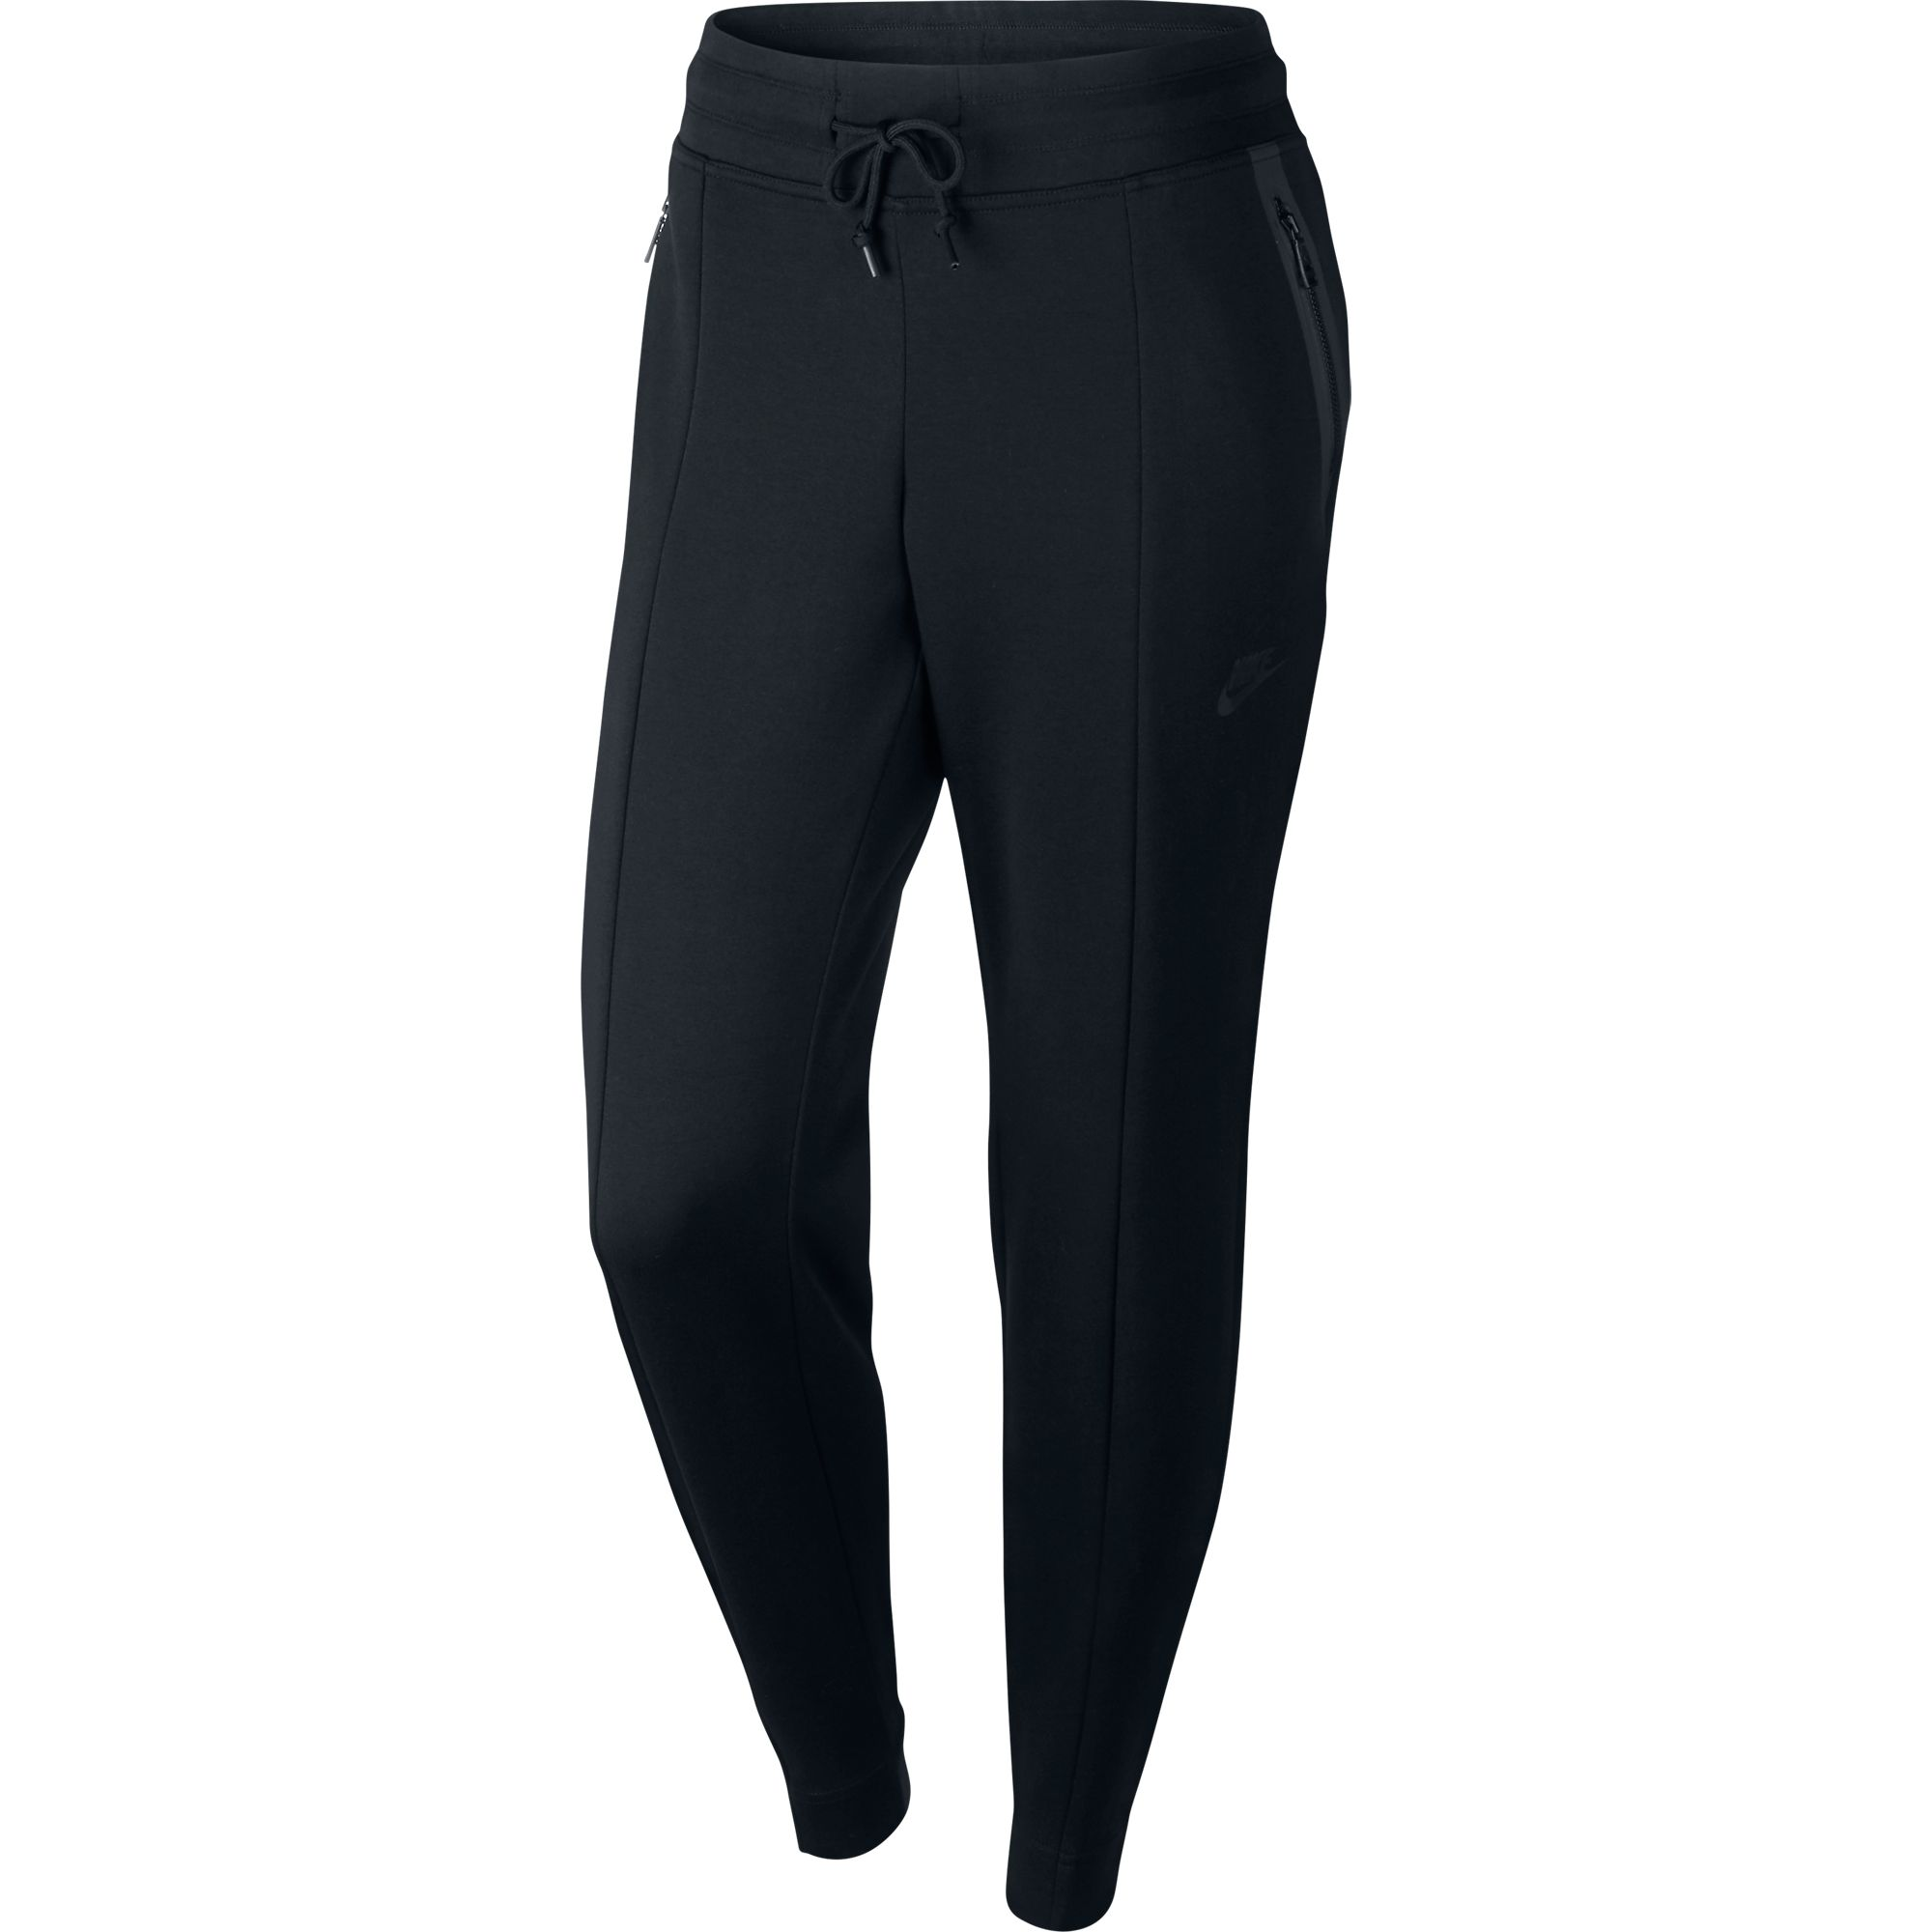 Creative Featuring Spandex Polyester This Nike Shorts Defines Chic Style And